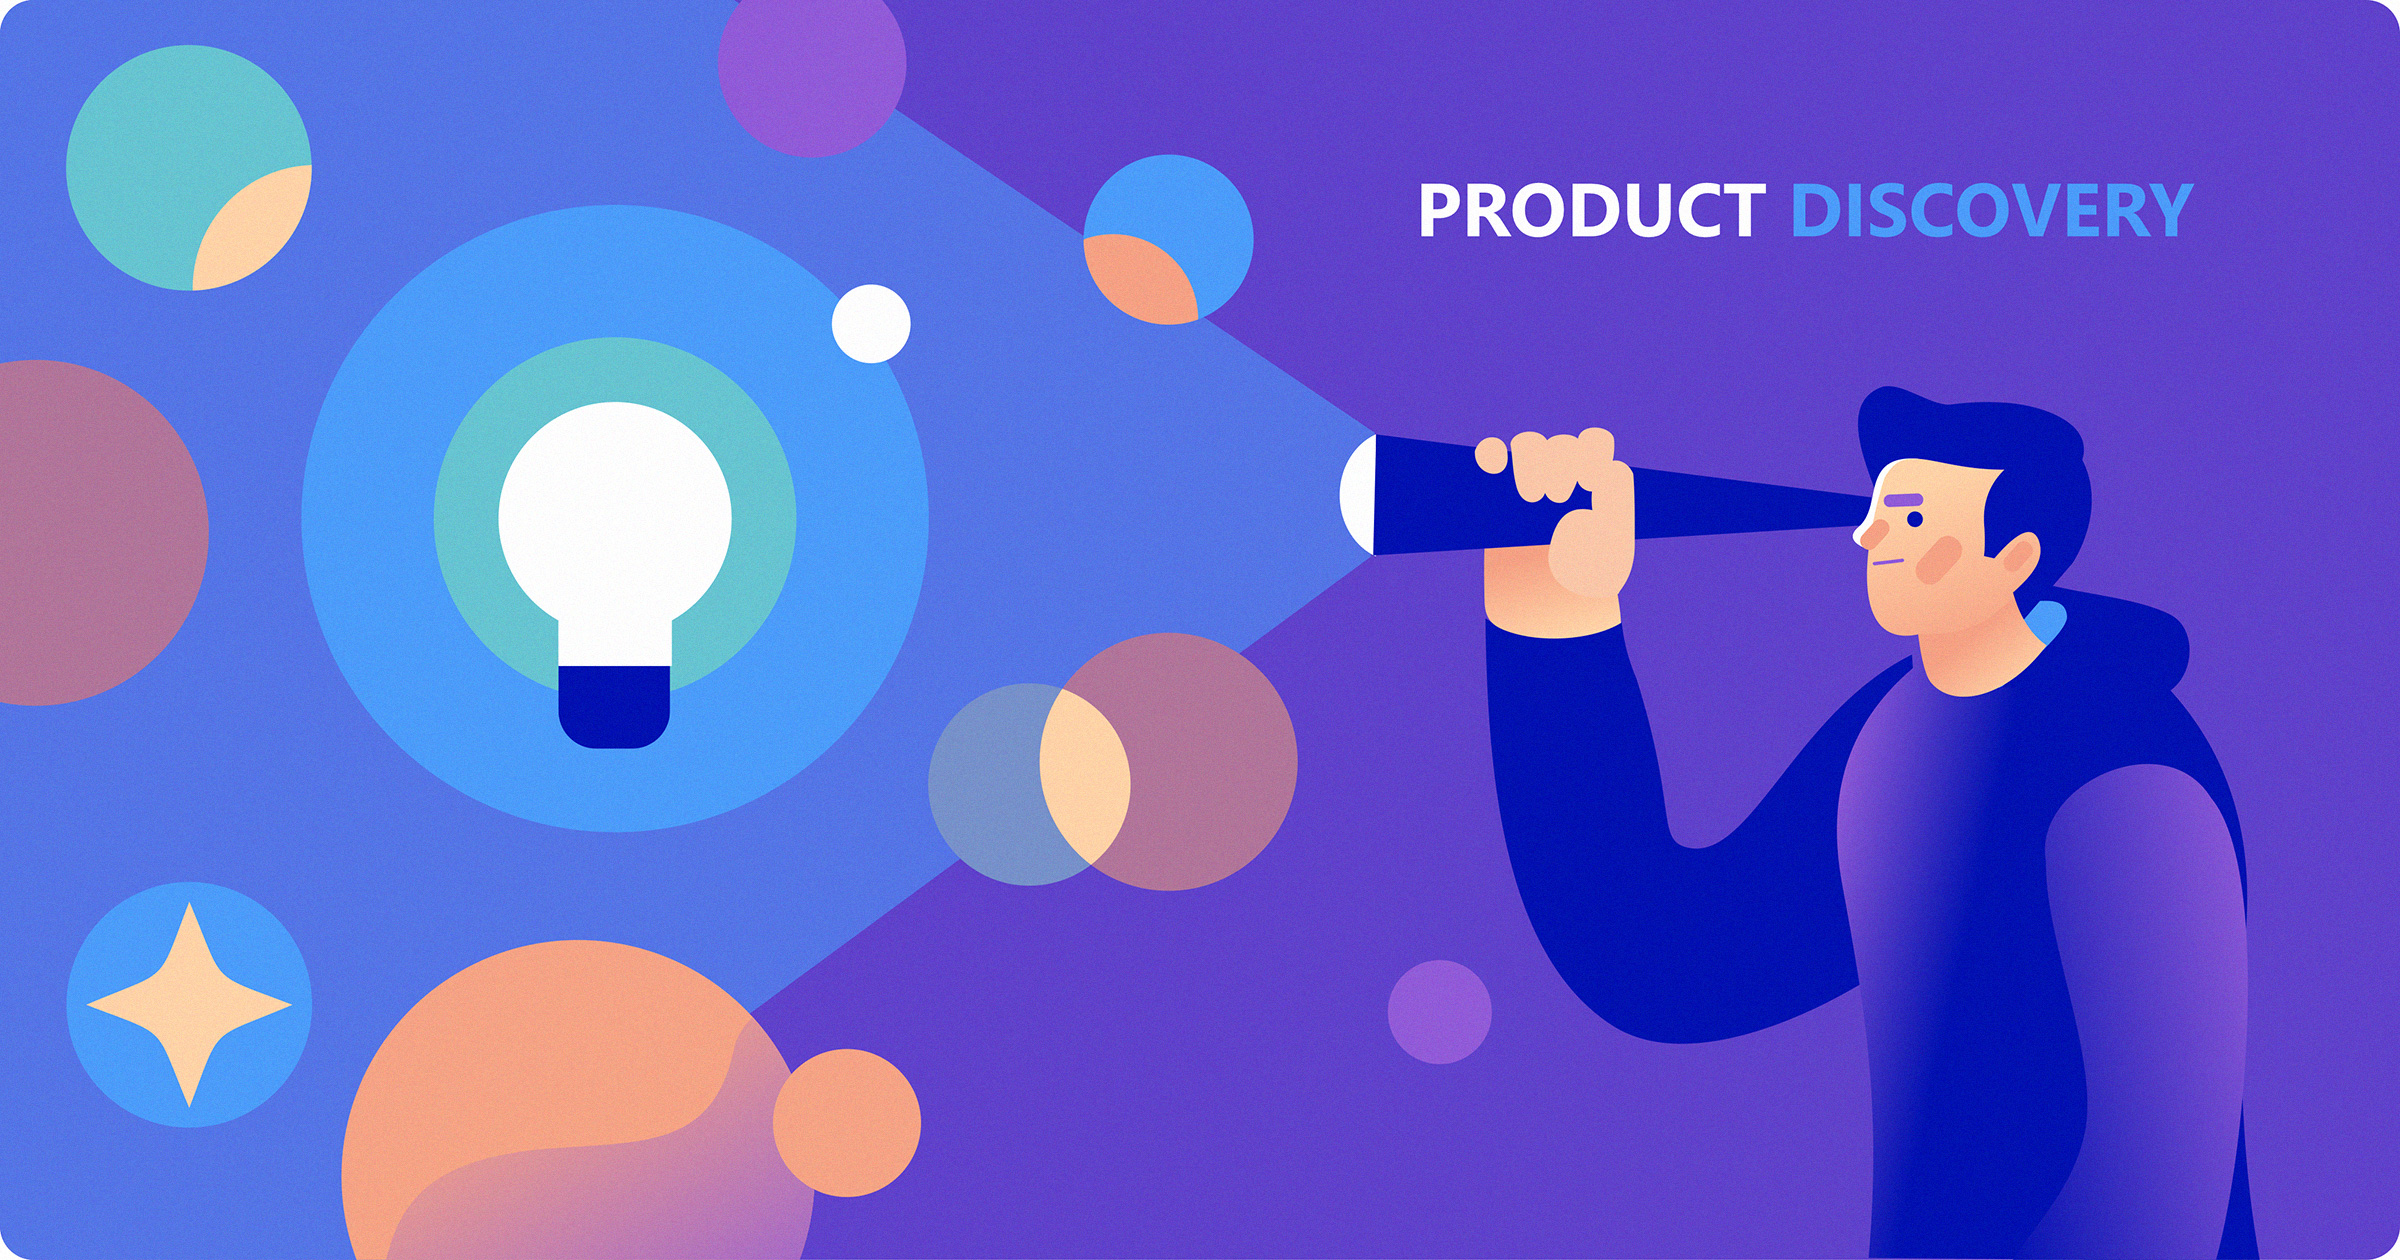 Product Discovery - Why, How, When and many others - answered!